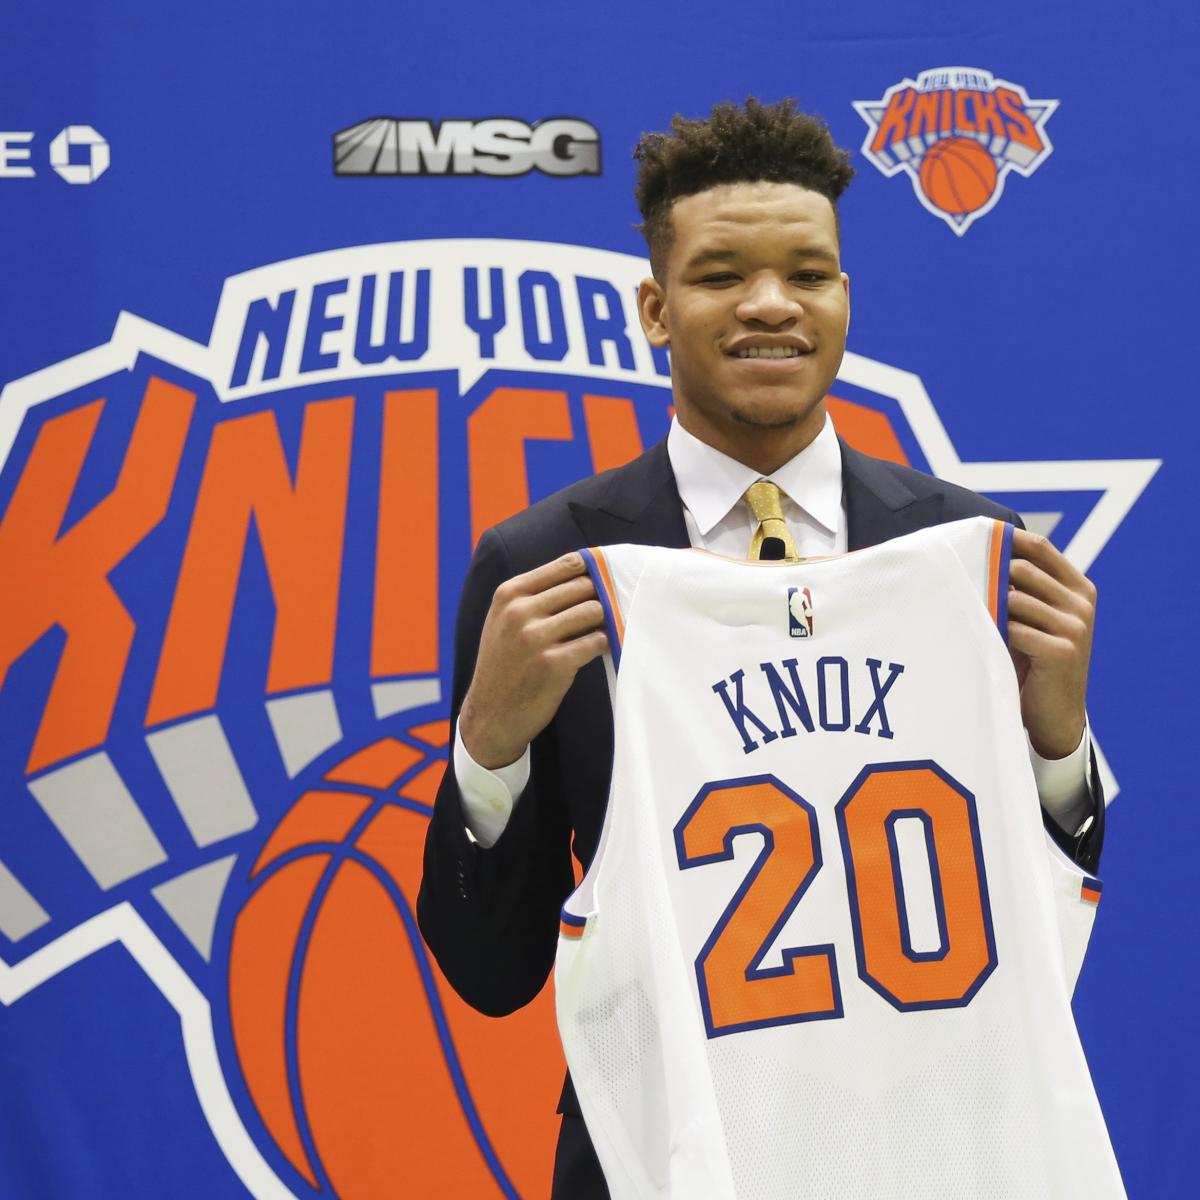 Knicks' Kevin Knox Says 'Rookie Of The Year' Goal Will Be